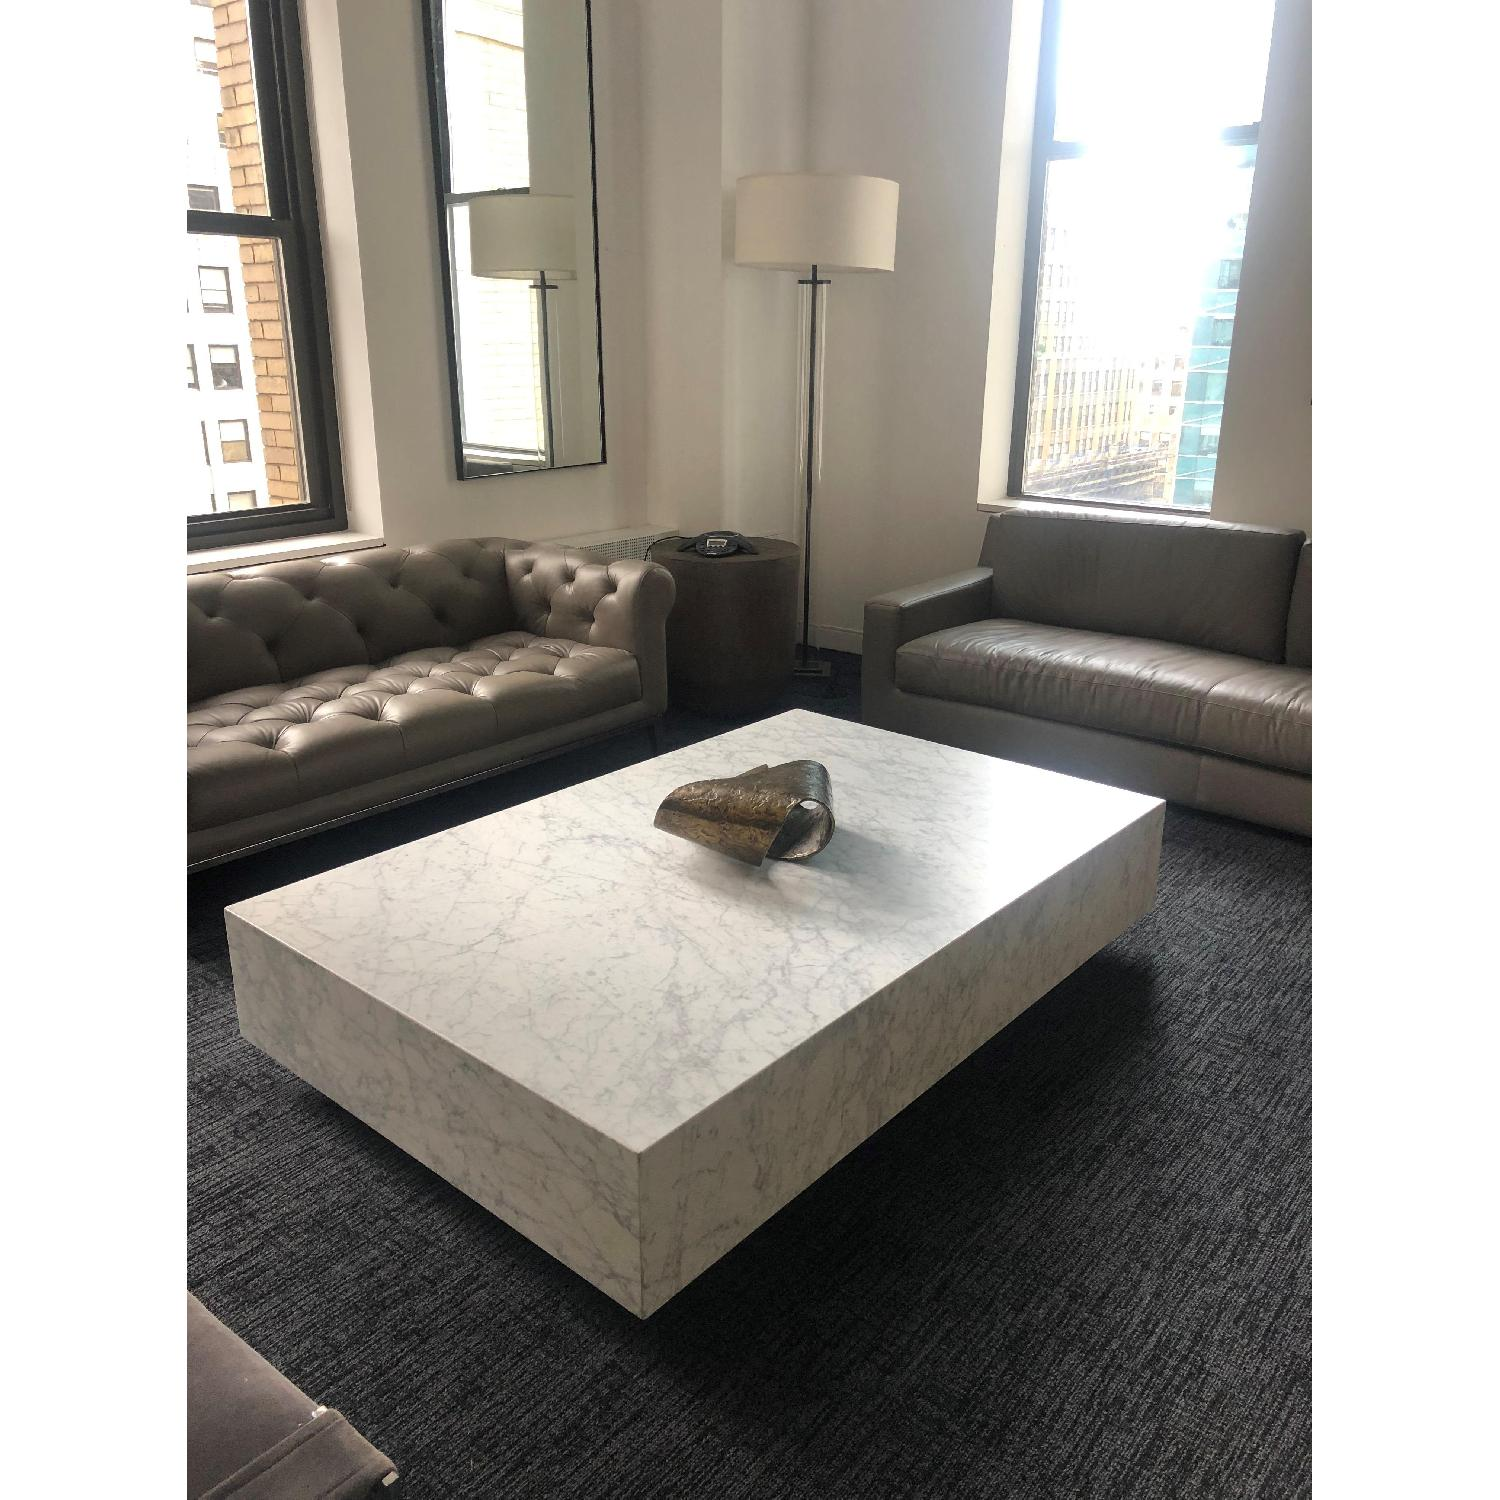 Restoration Hardware Plinth White Marble Coffee Table - image-2